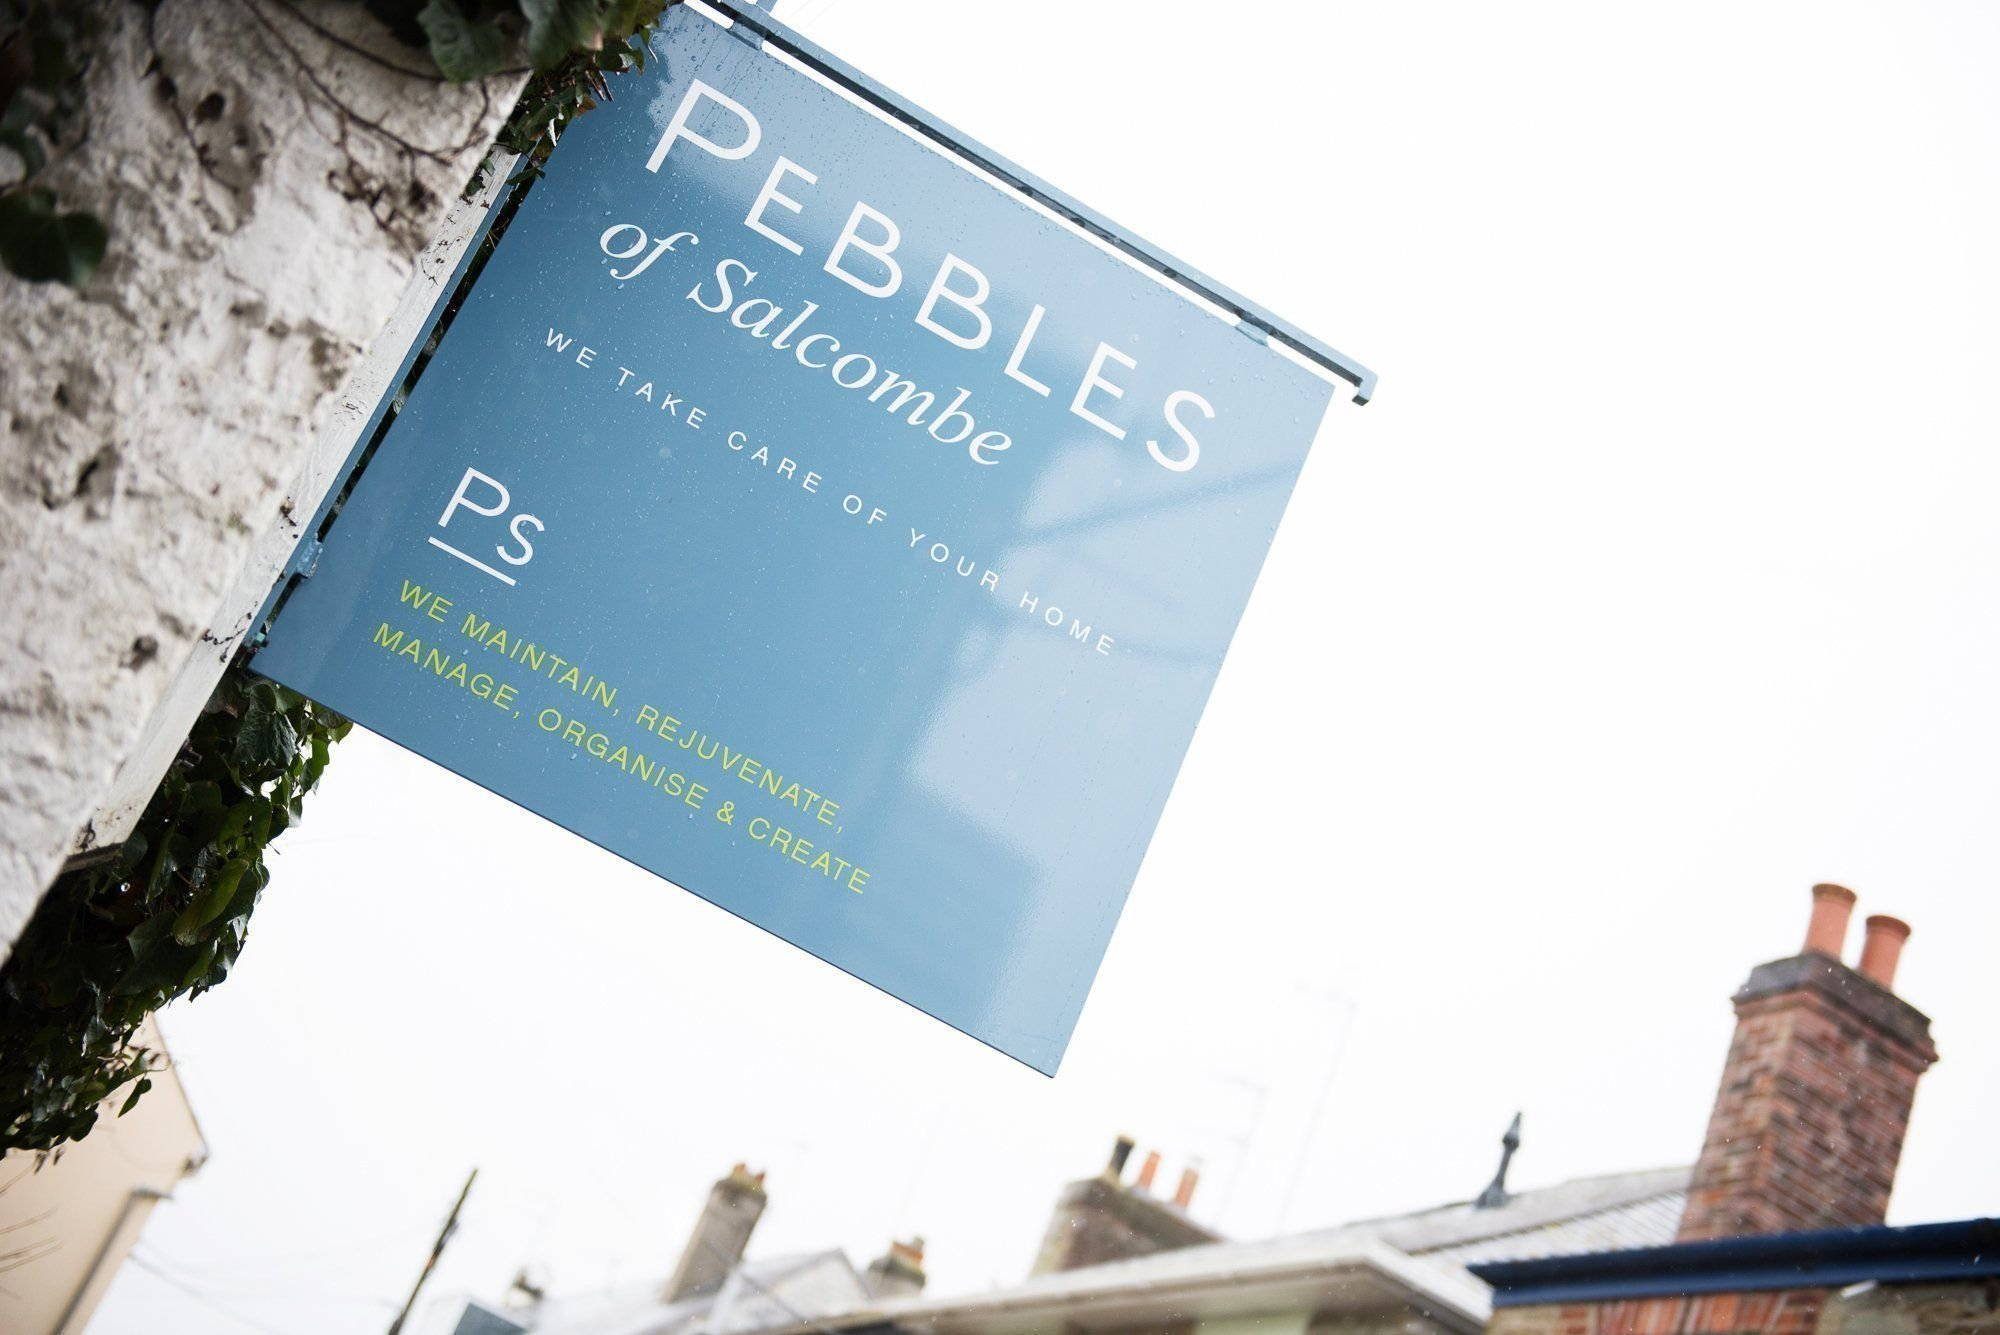 Working at Pebbles of Salcombe